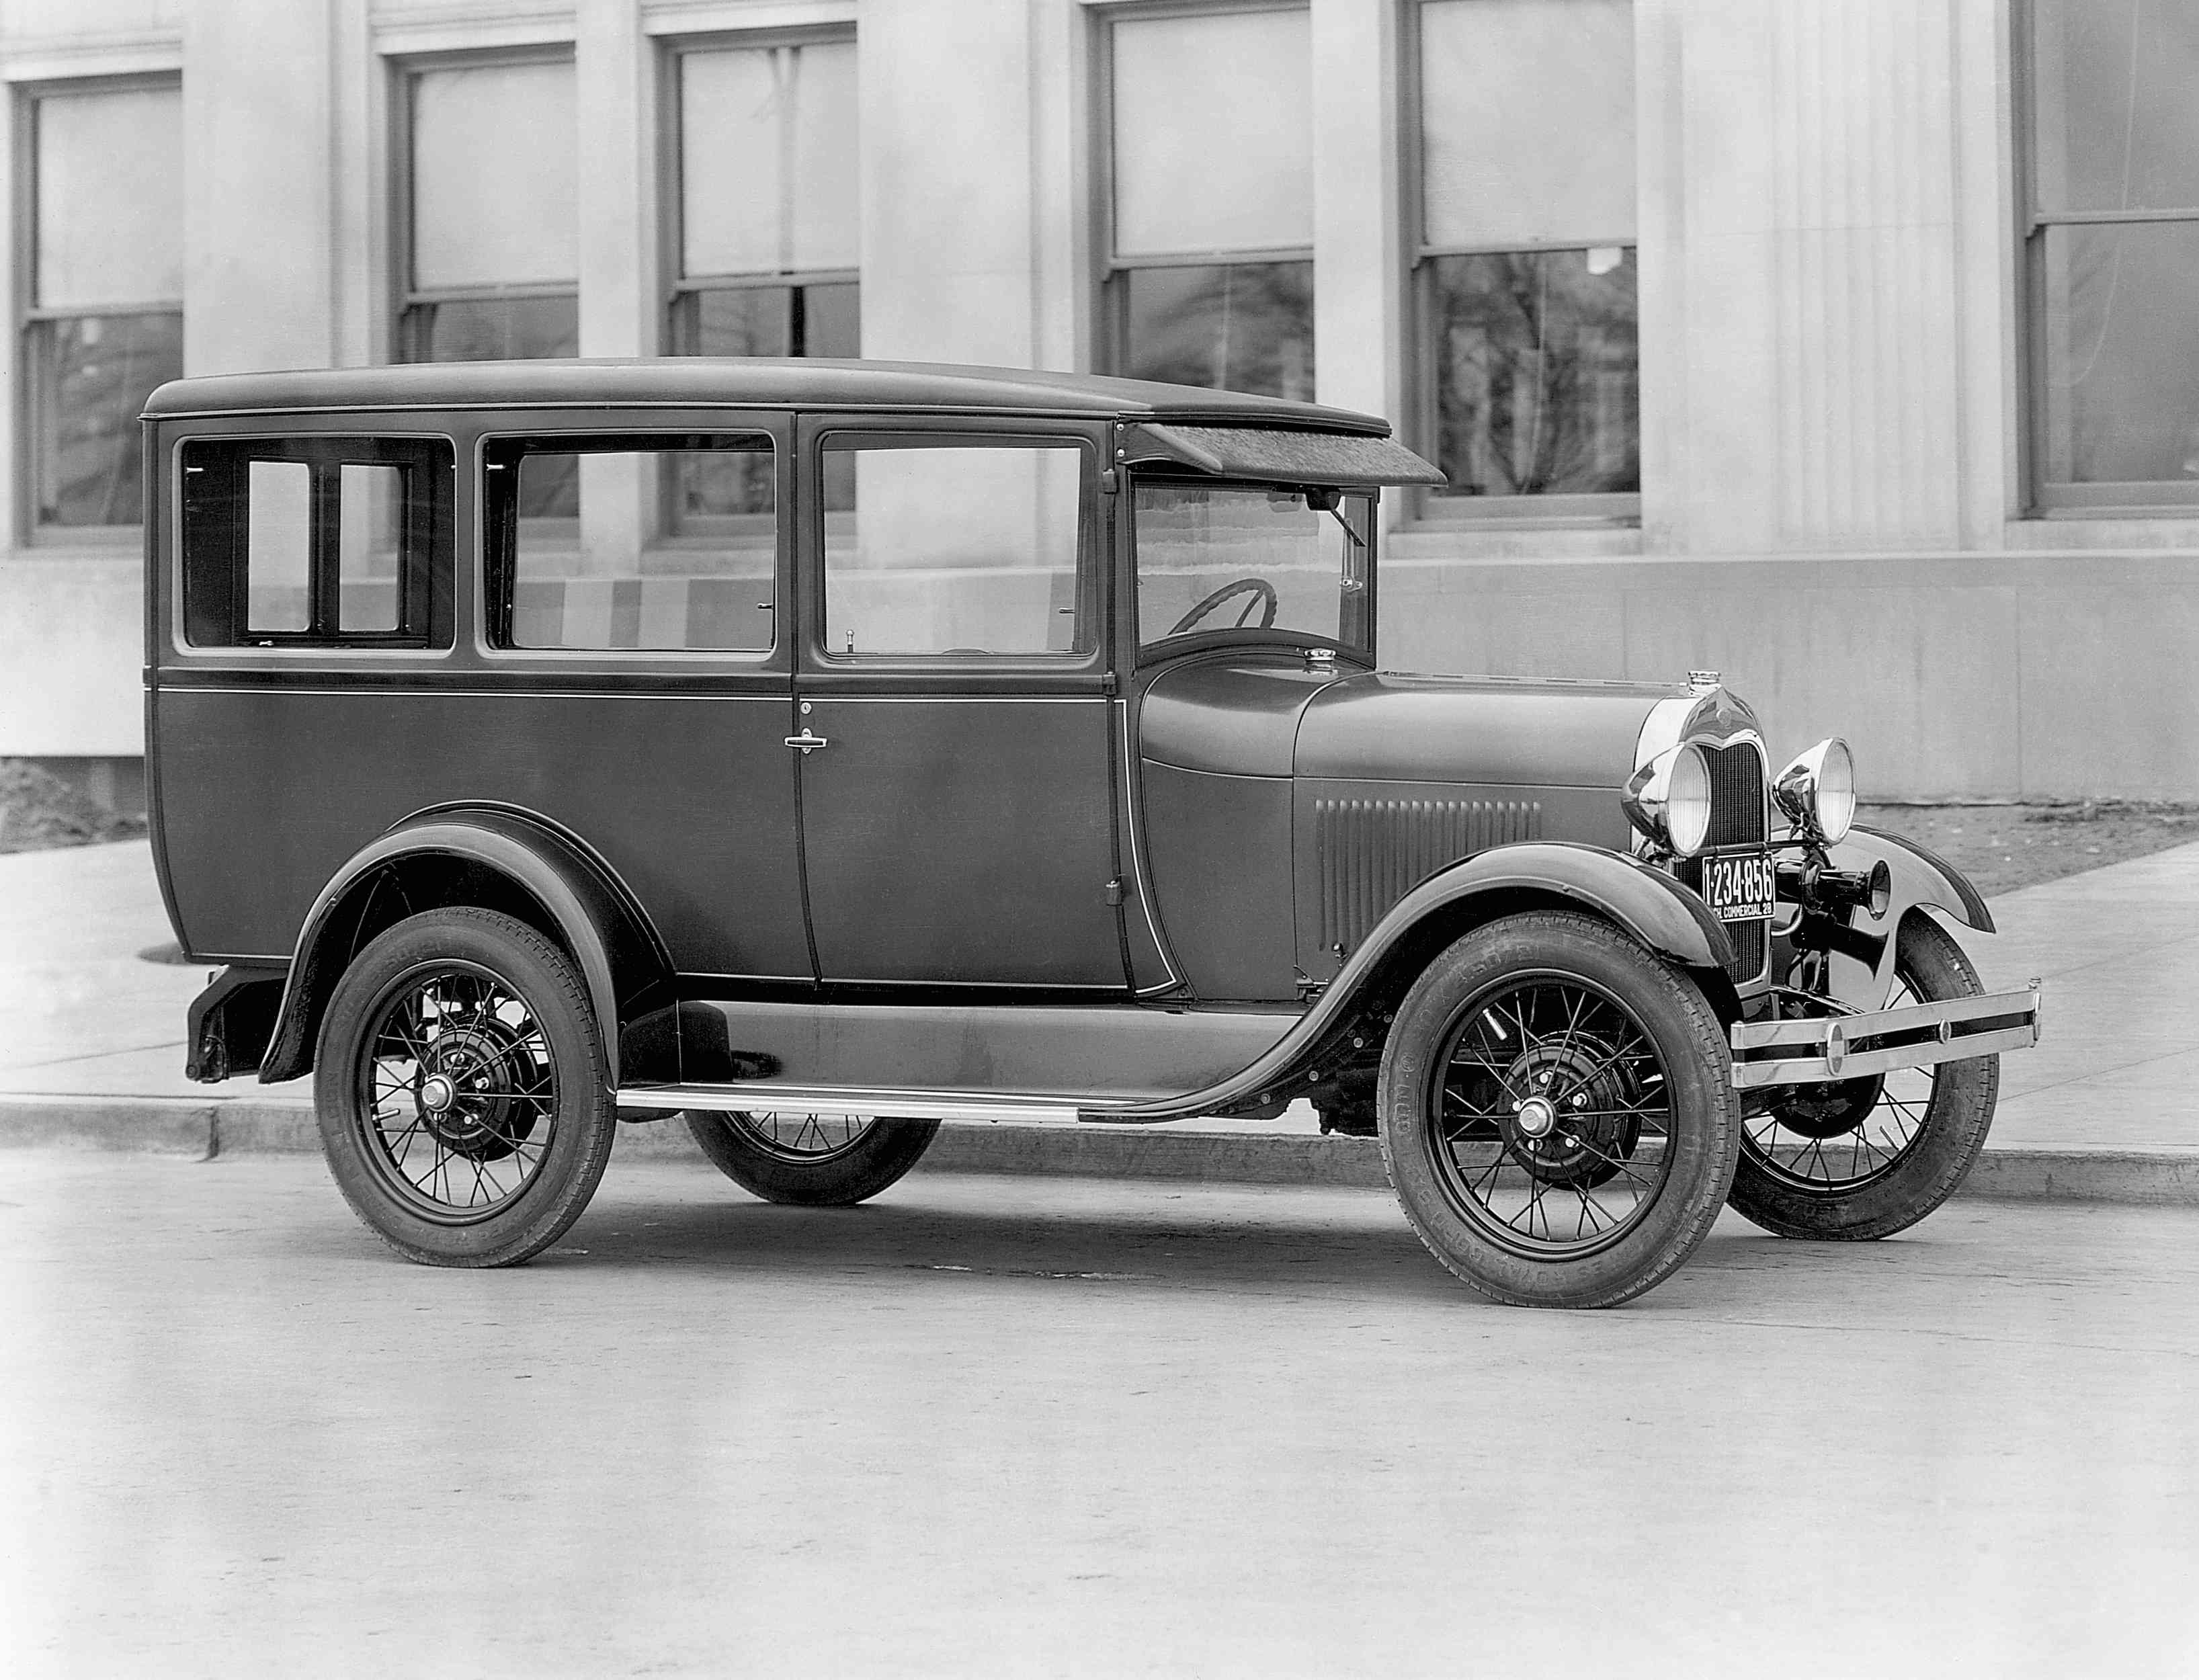 Photograph of a Ford Model A